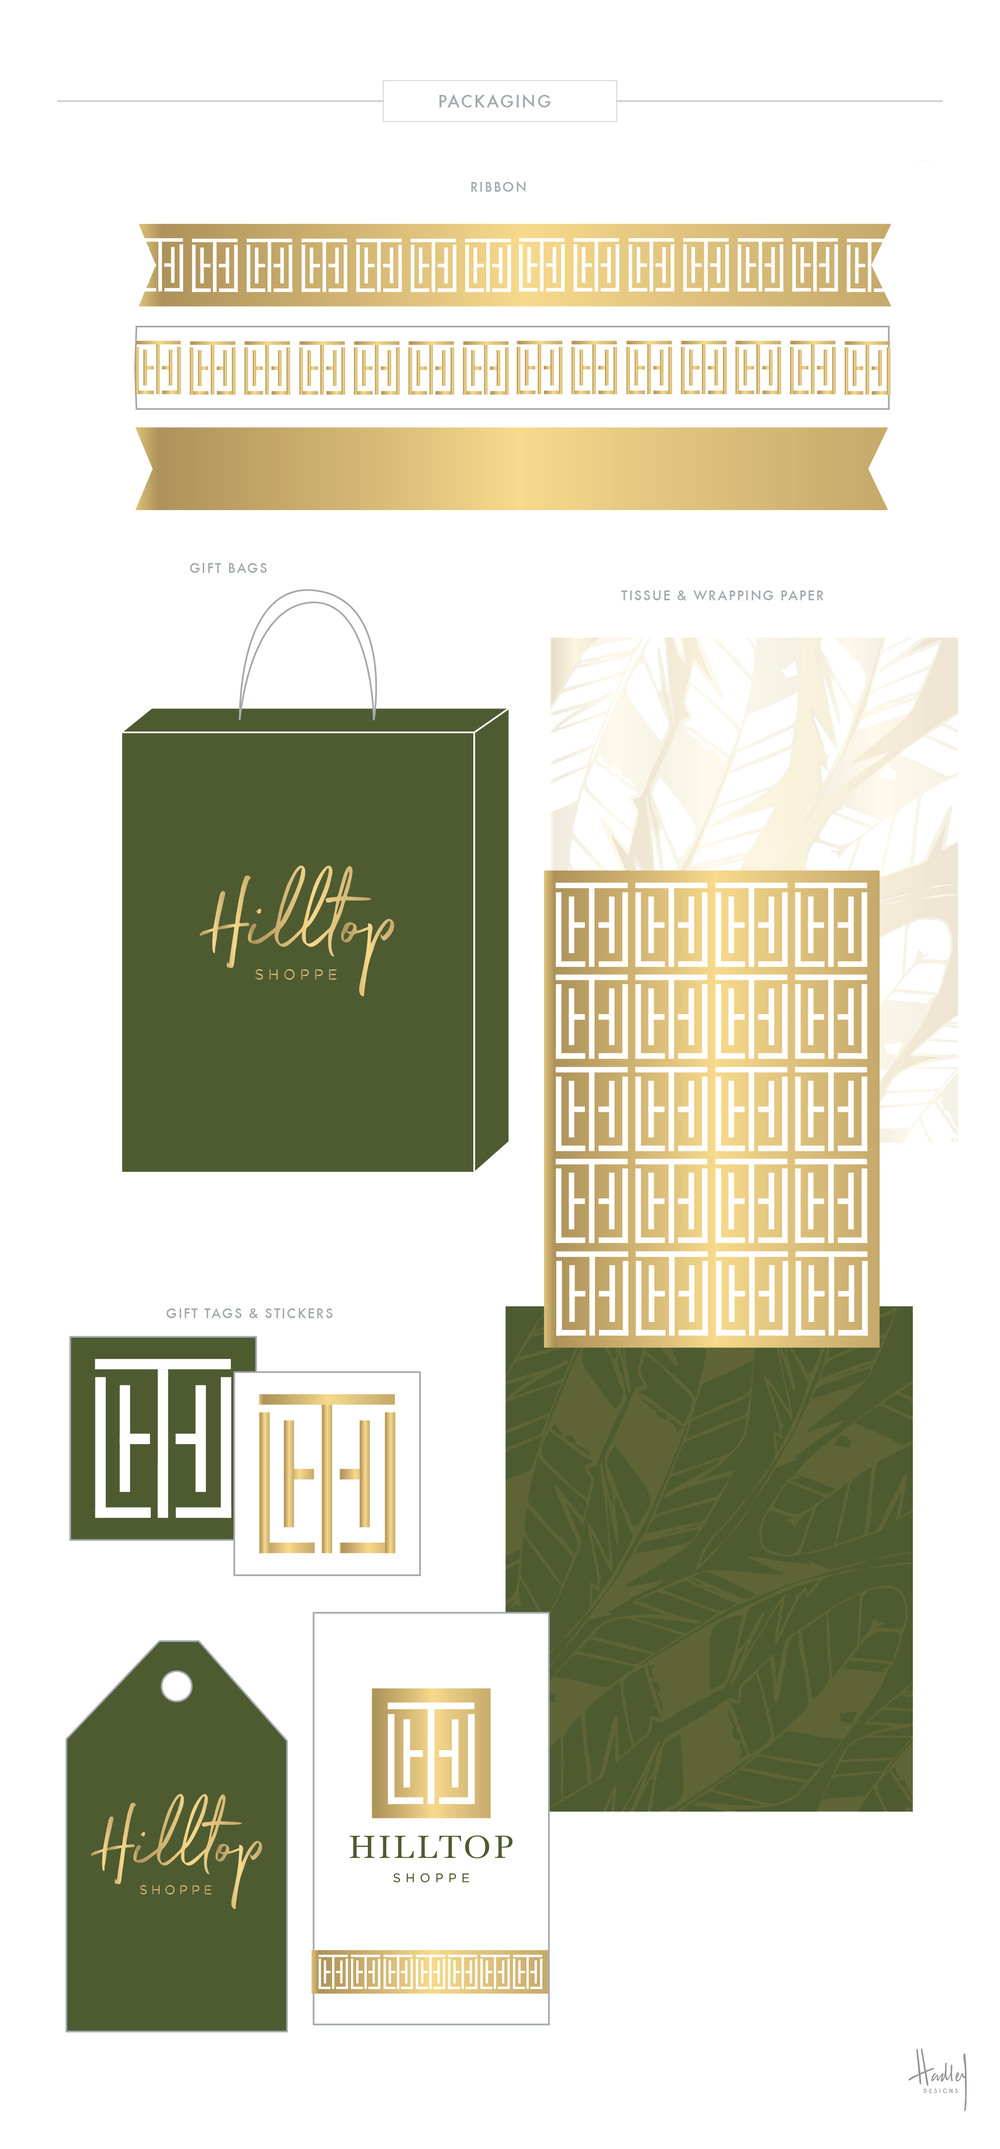 Hilltop_Packaging.png